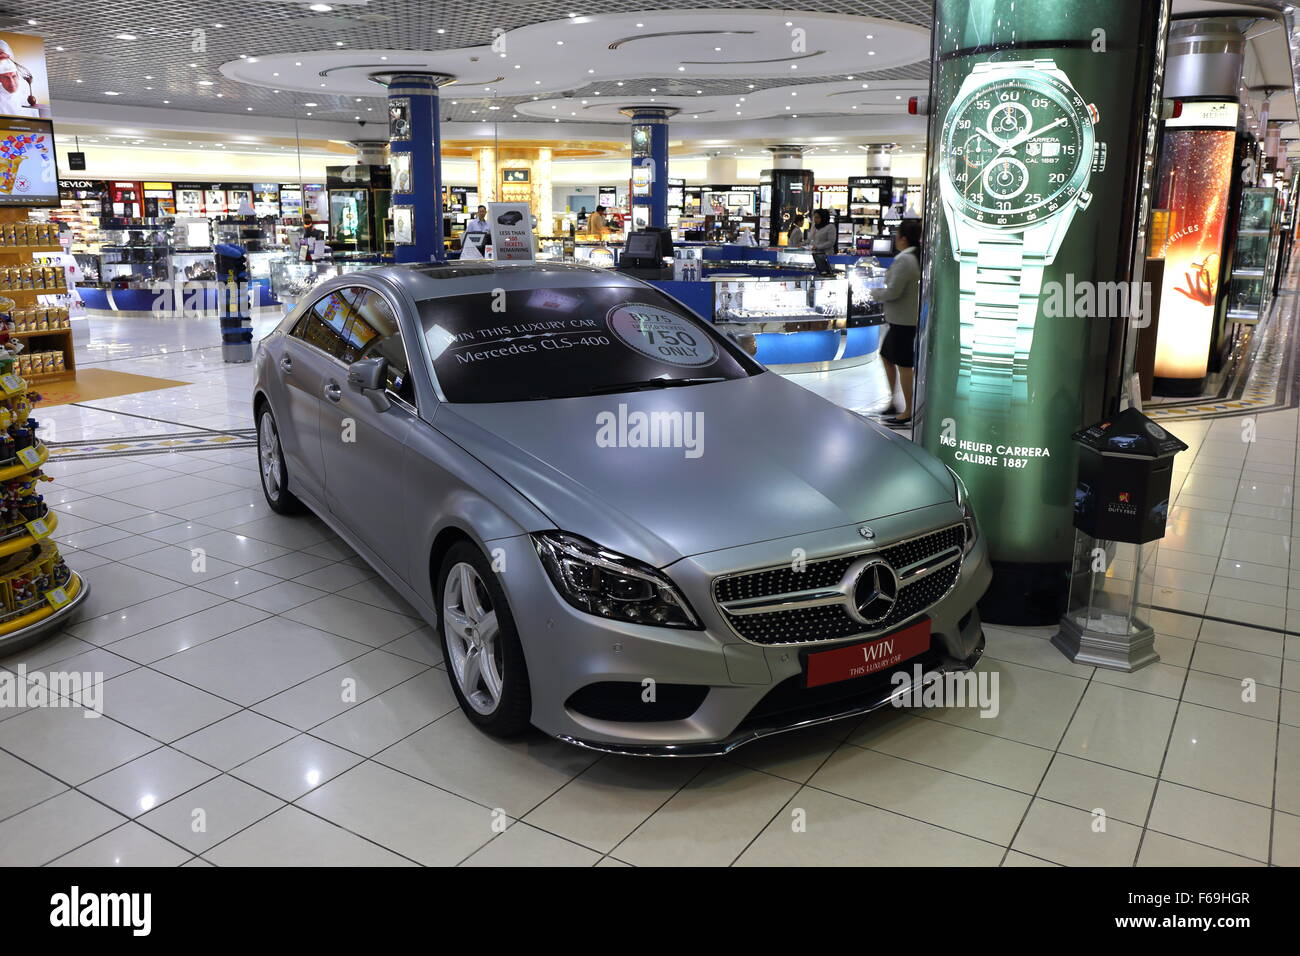 A Mercedes CLS 400 - the prize at the Bahrain Airport Duty Free raffle, October 2015, Muharraq, Kingdom of Bahrain - Stock Image